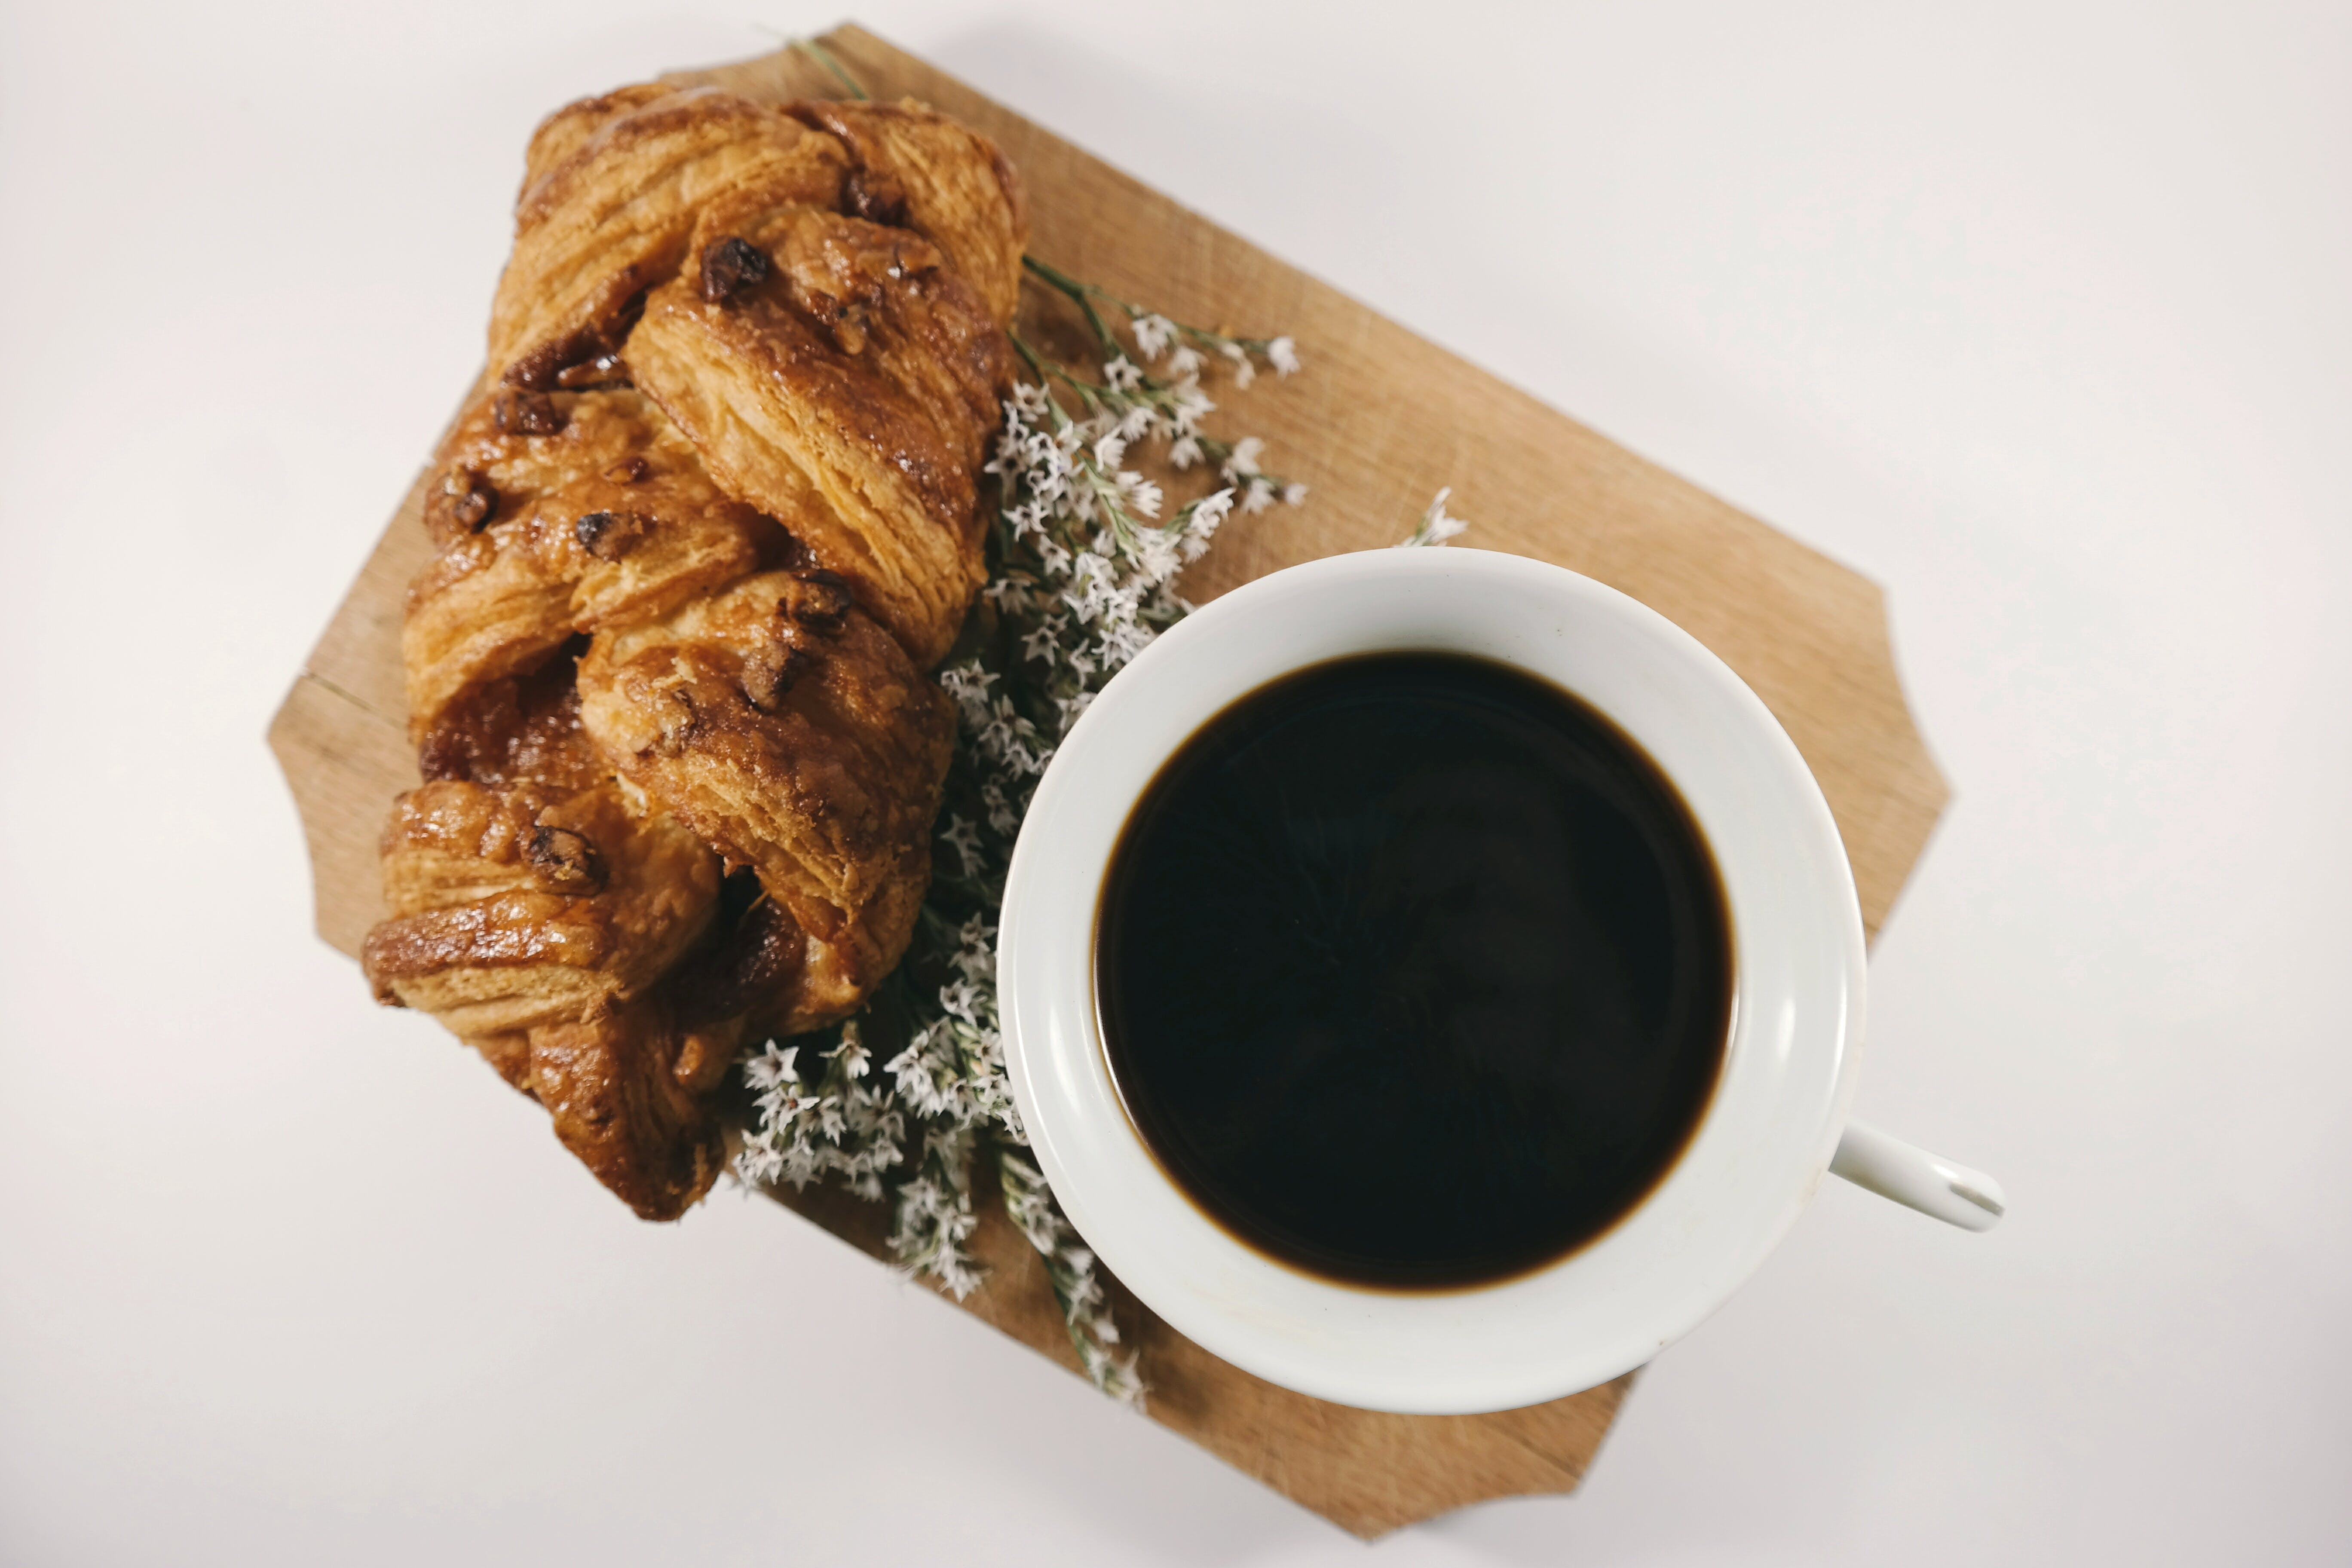 Free stock photo of bread, food, wood, caffeine